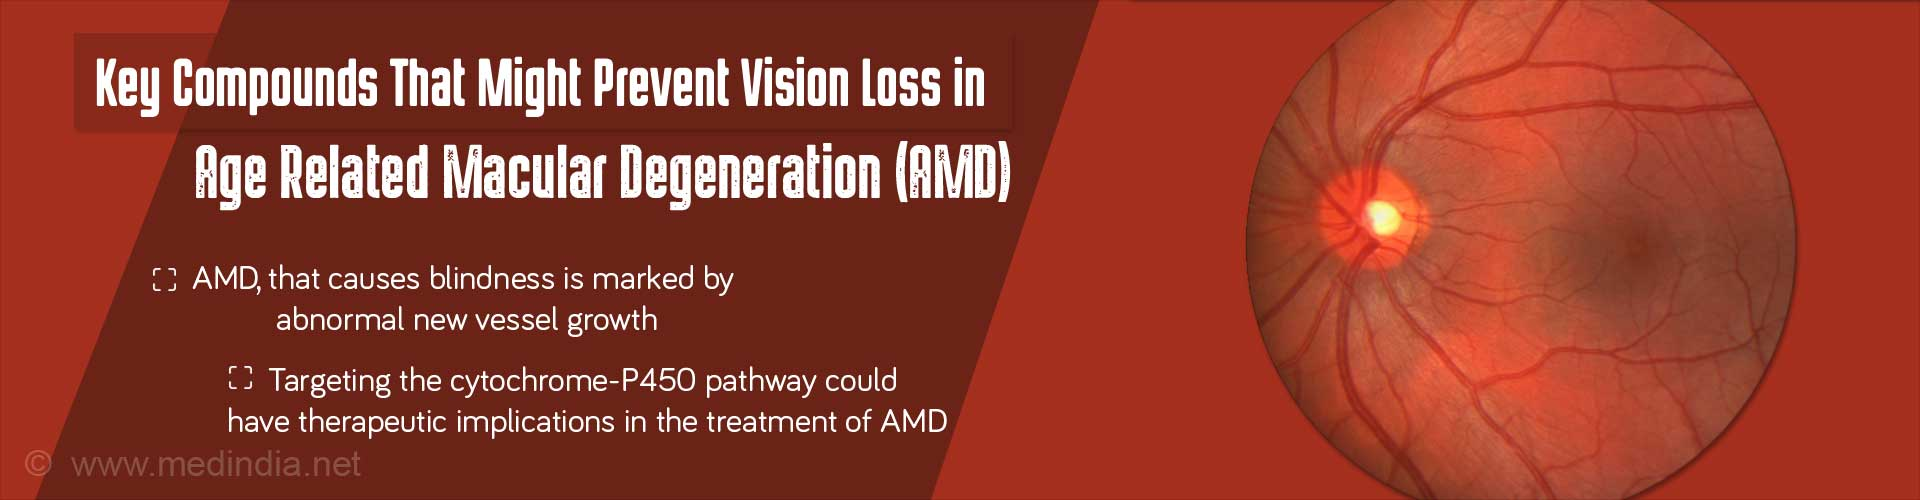 Compounds Of Major Enzyme Pathway May Prevent Blindness In Age Related Macular Degeneration